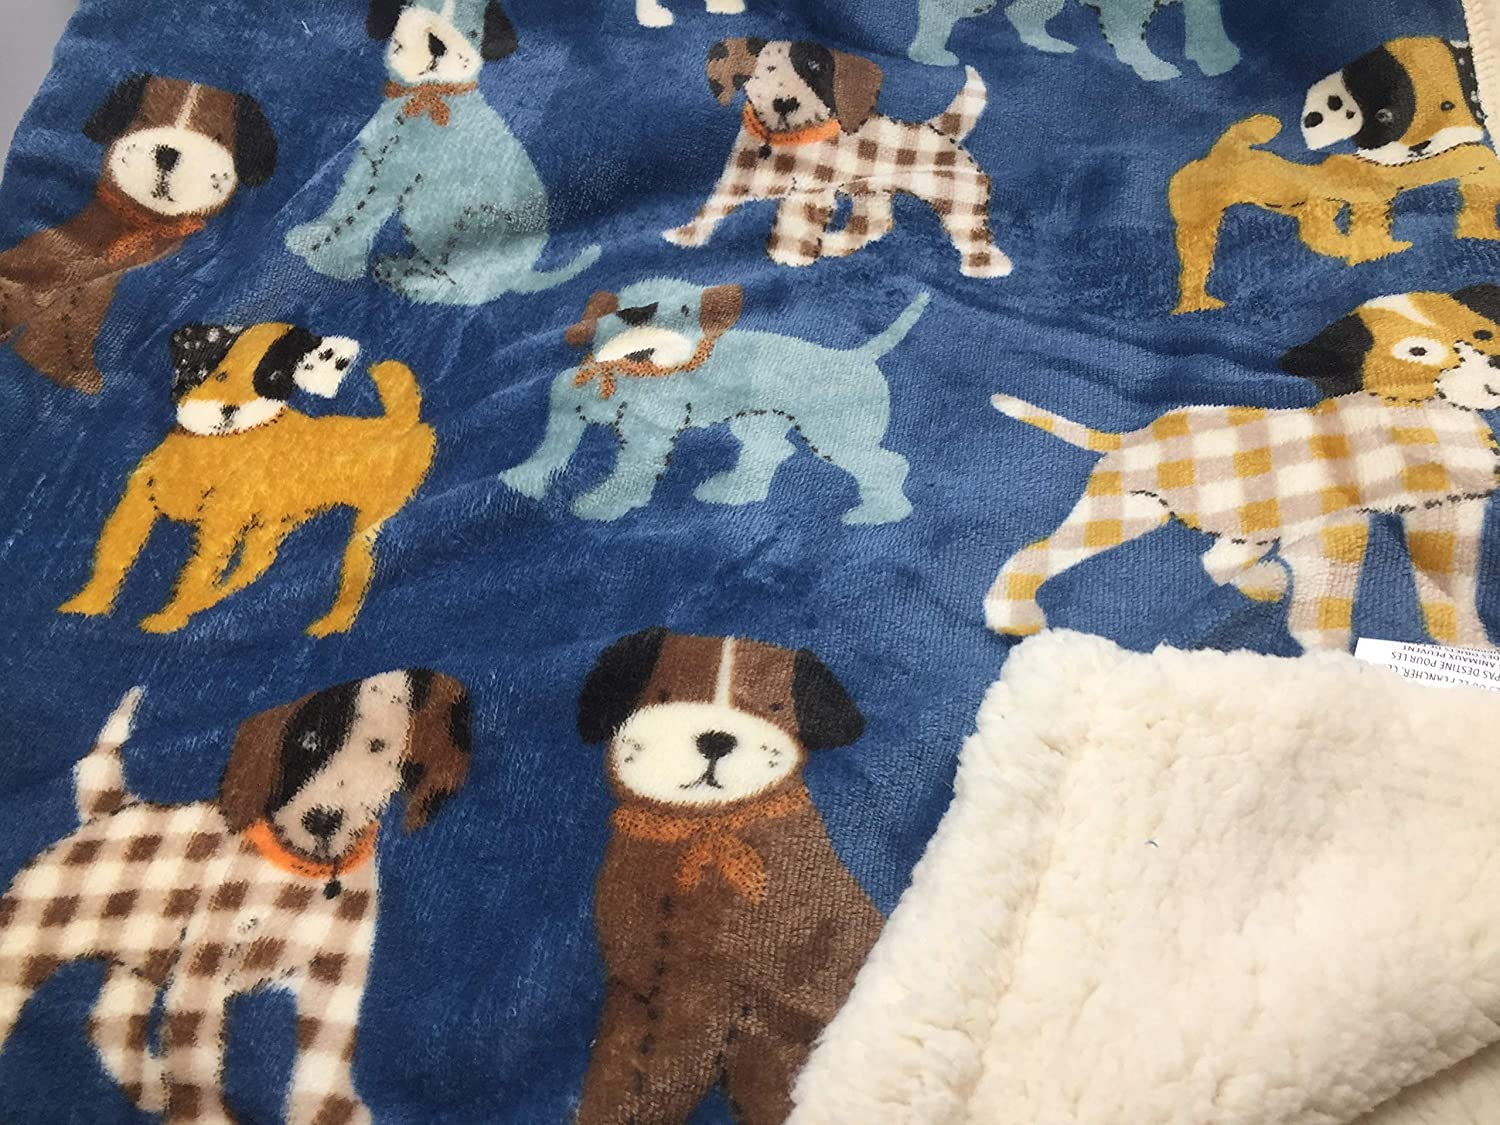 A Dog's Life bluee colorful Dogs Plush Pet Throw Blanket Sherpa Lined 50  x 60